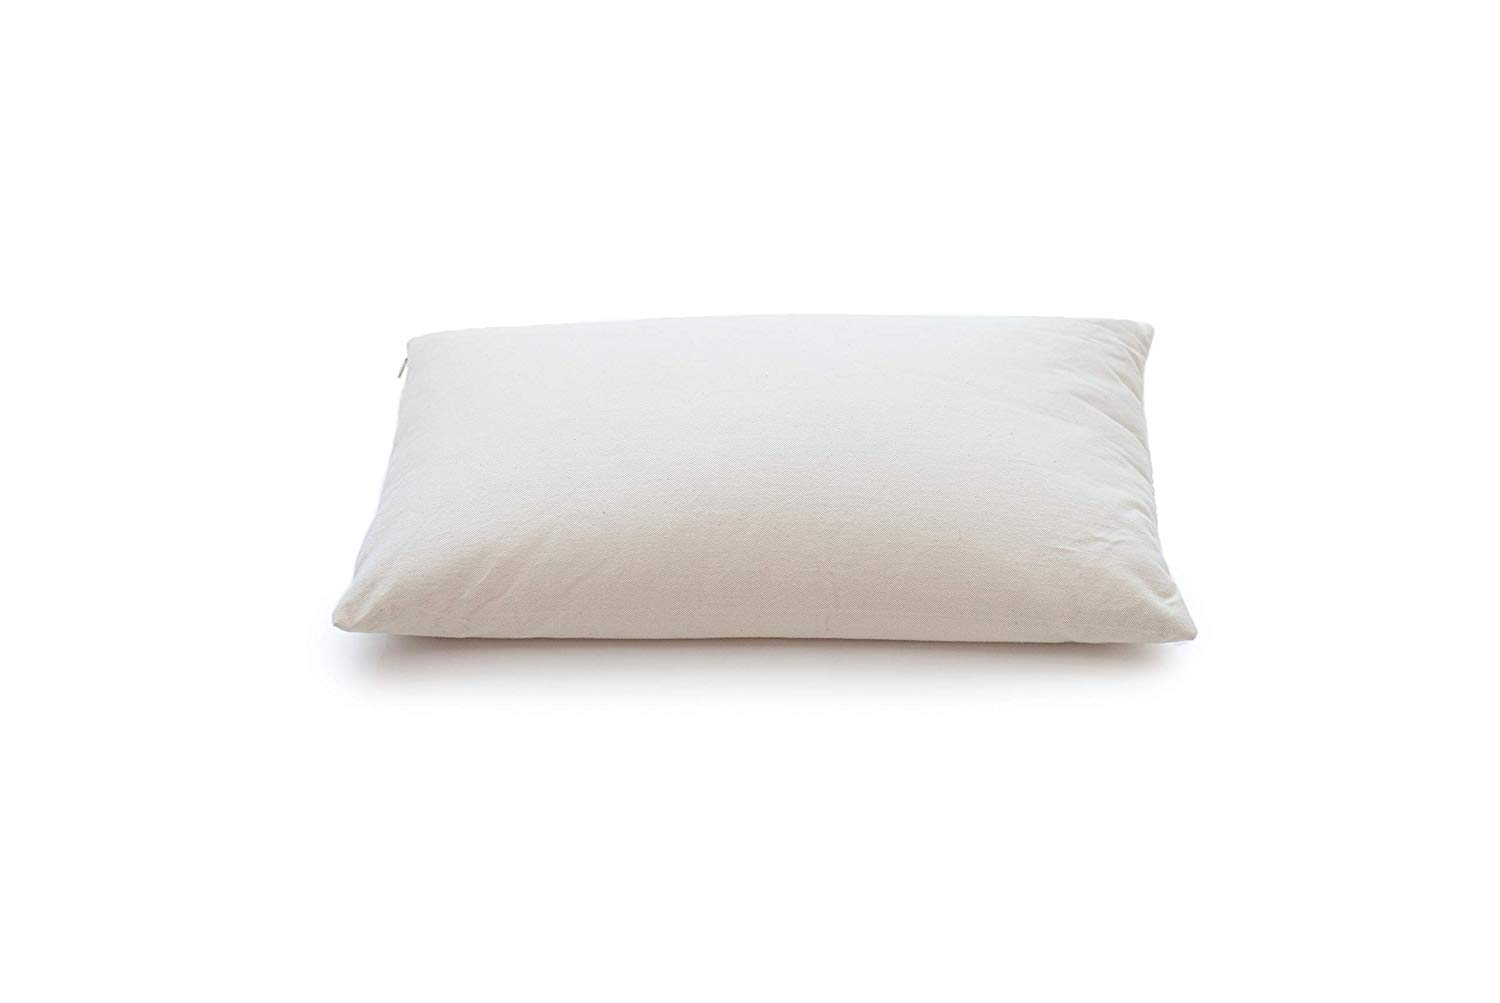 ComfySleep Best Pillow Review by www.snoremagazine.com